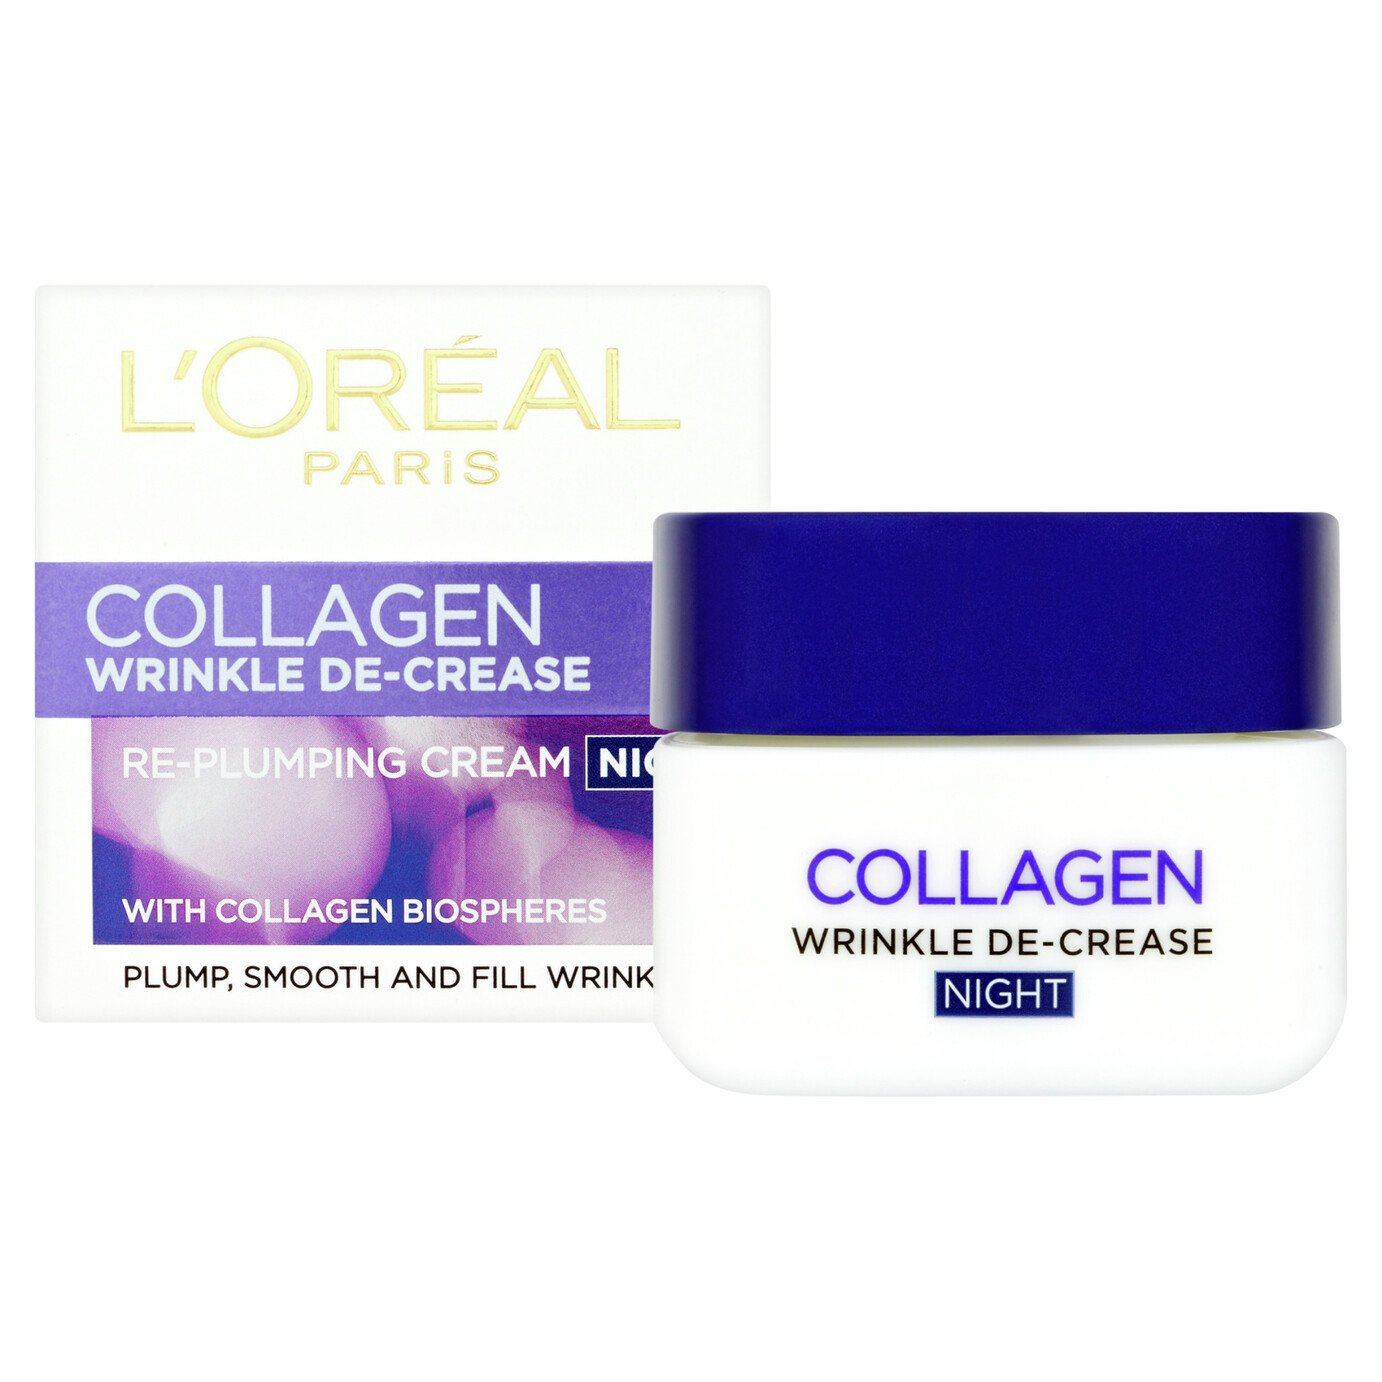 L'Oreal Collagen Wrinkle Night Cream - 50ml